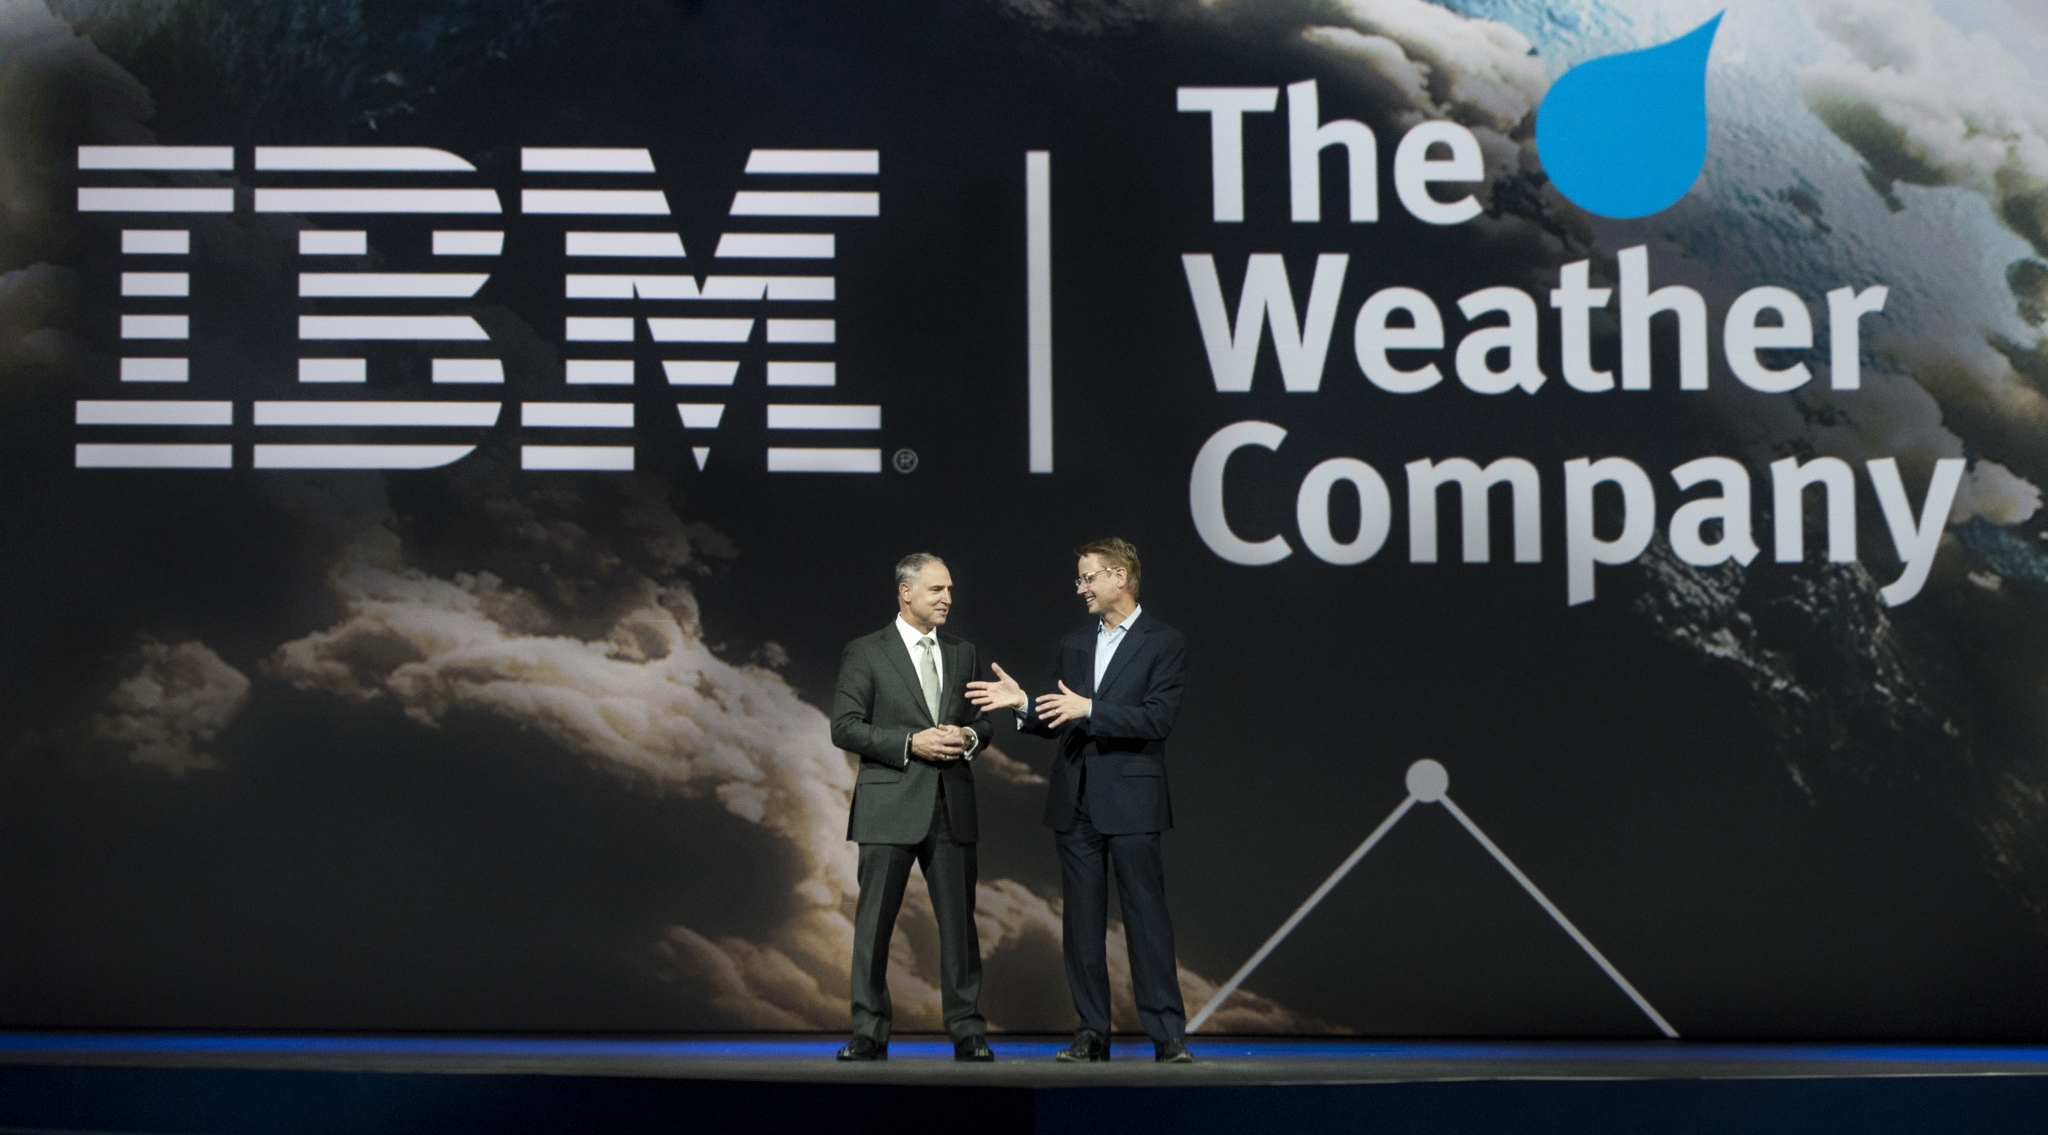 IBM Weather Company